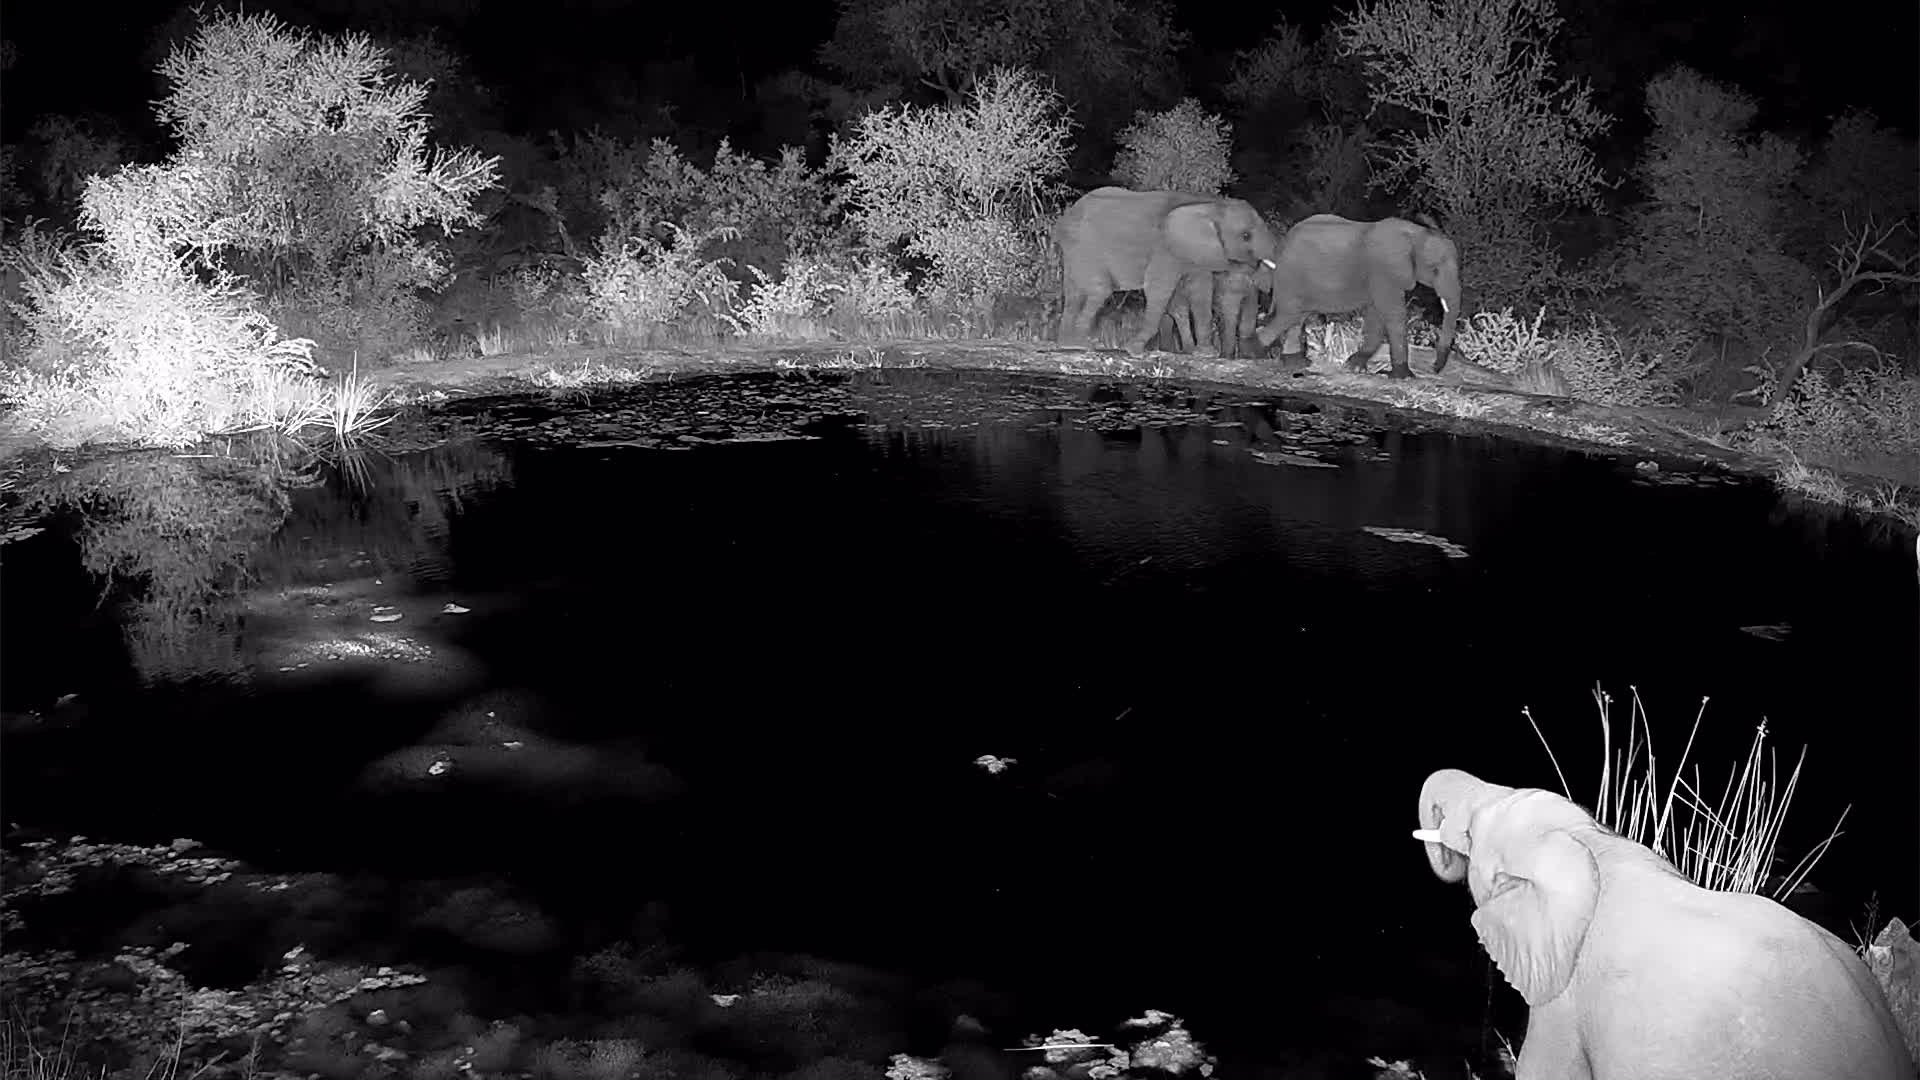 VIDEO: Small breeding herd of Elephants drinking water.